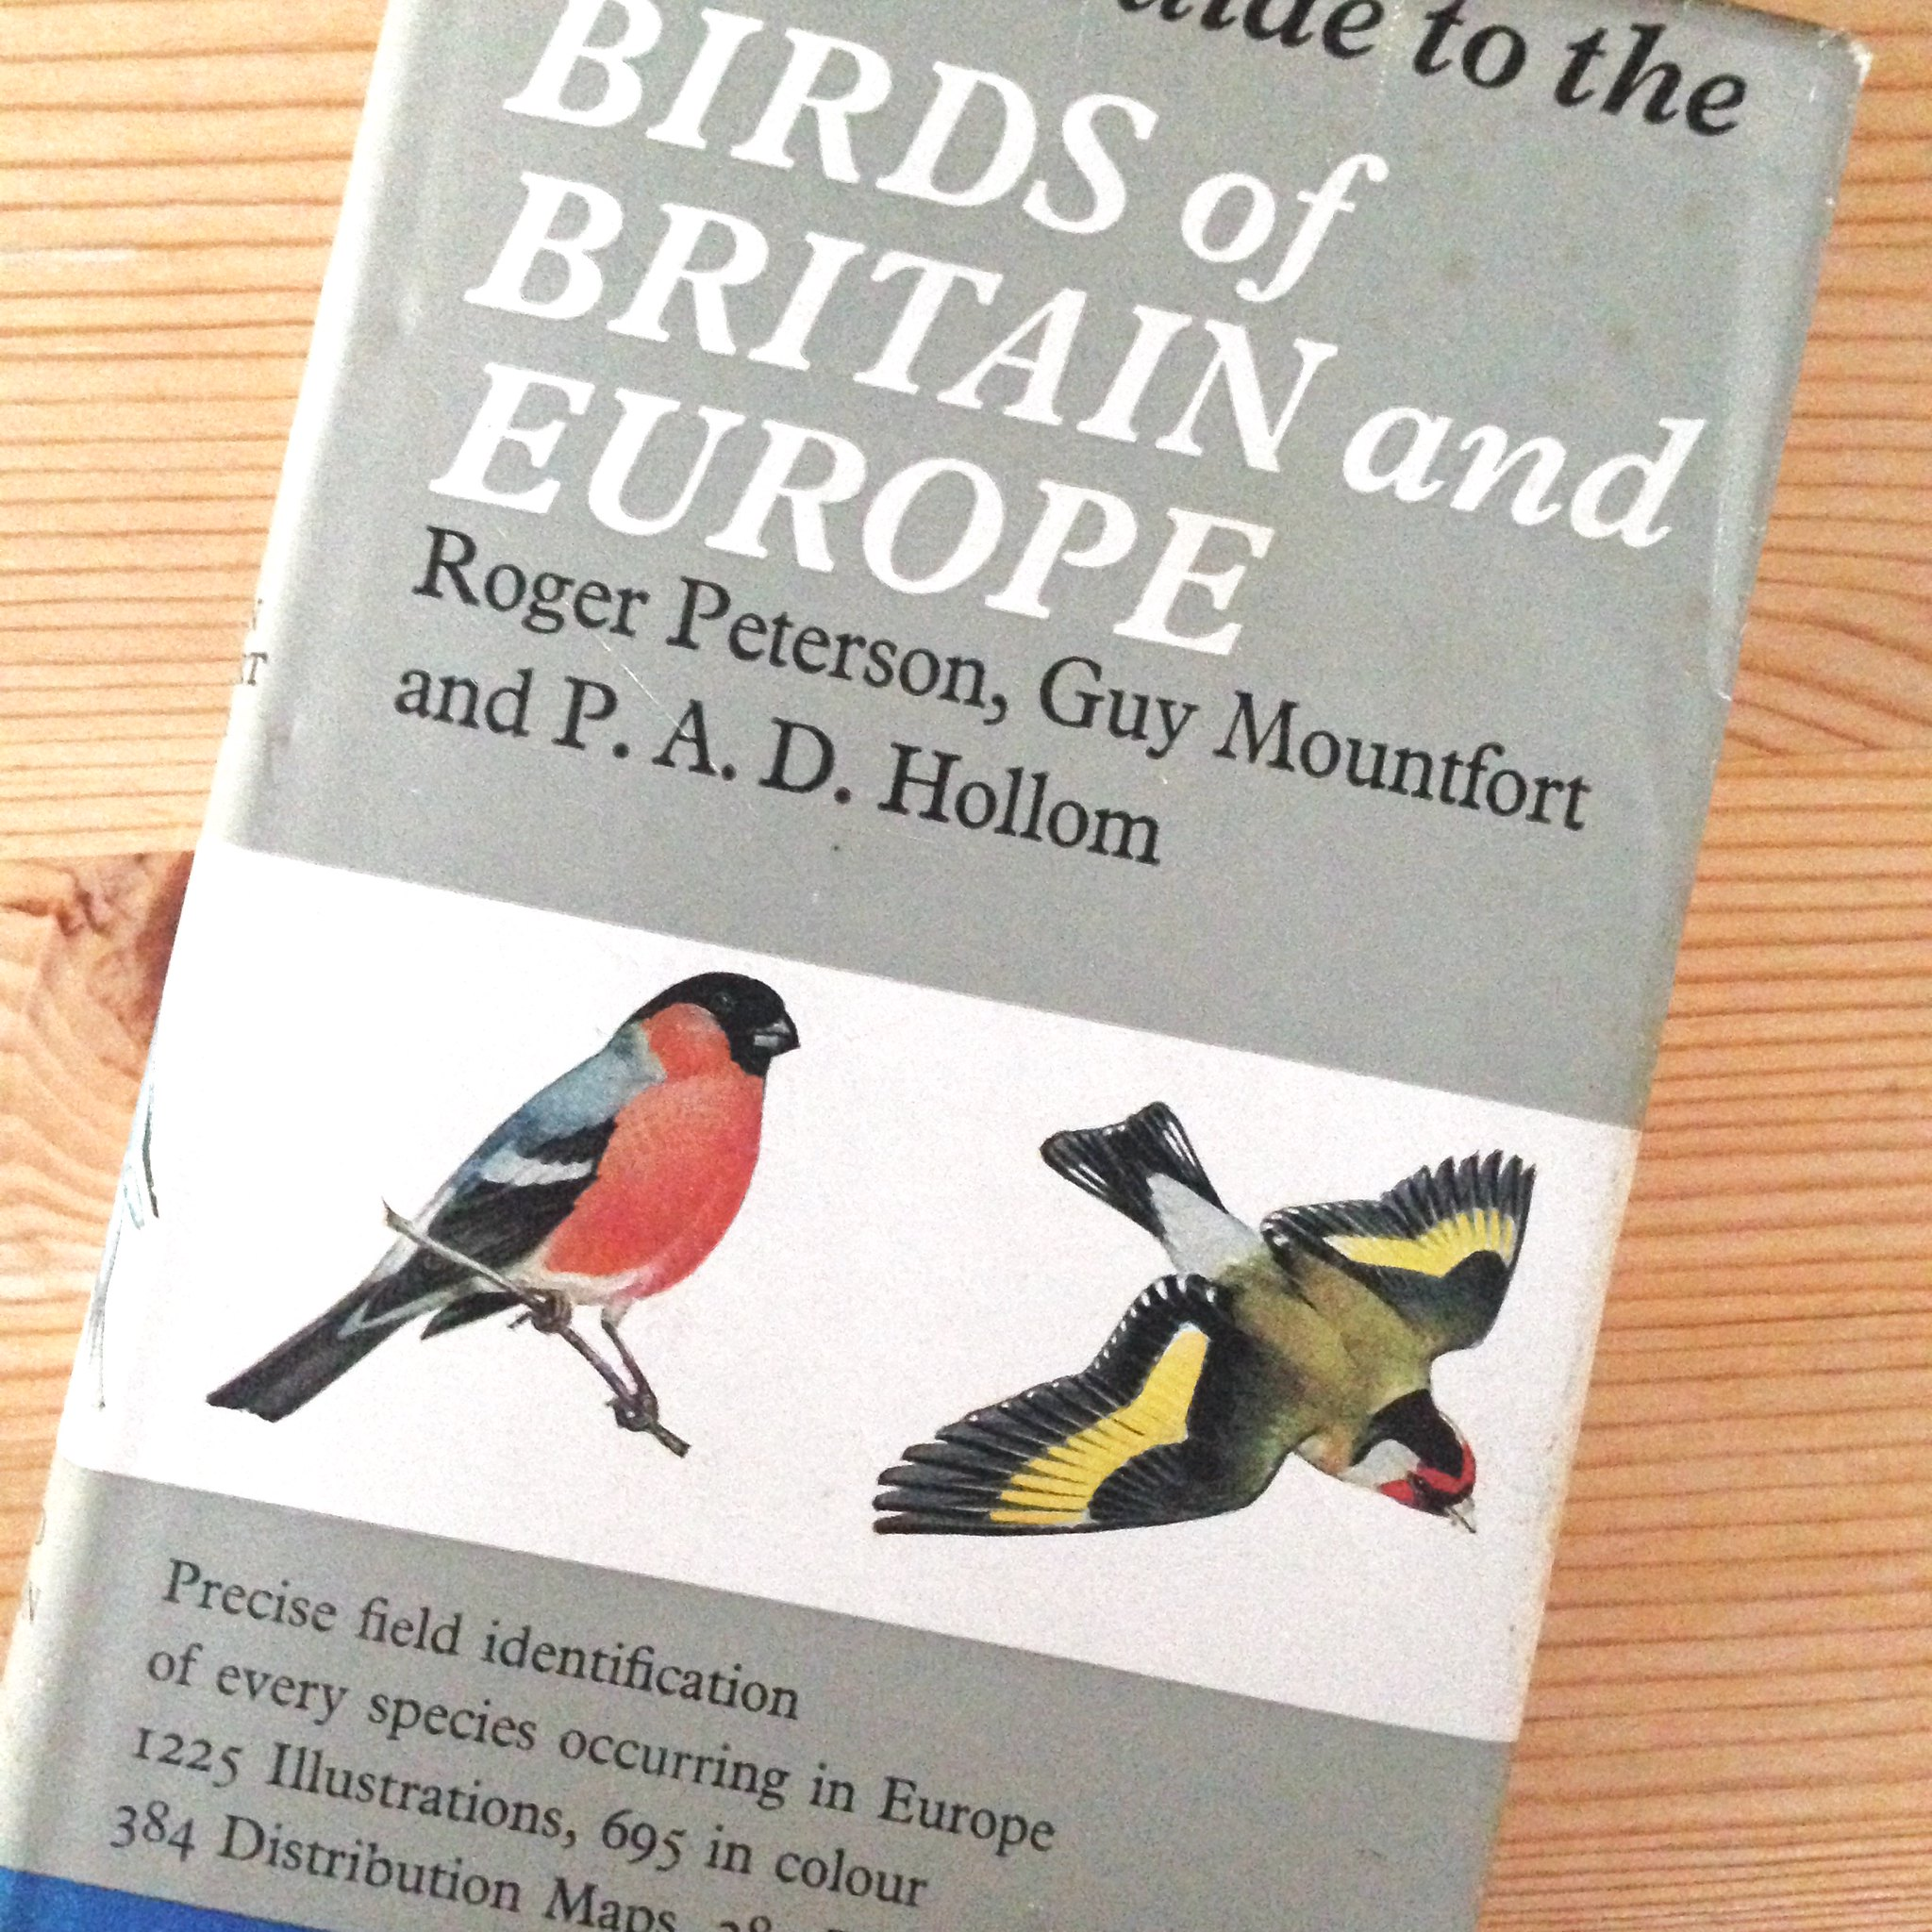 Field guide to birds of Britain